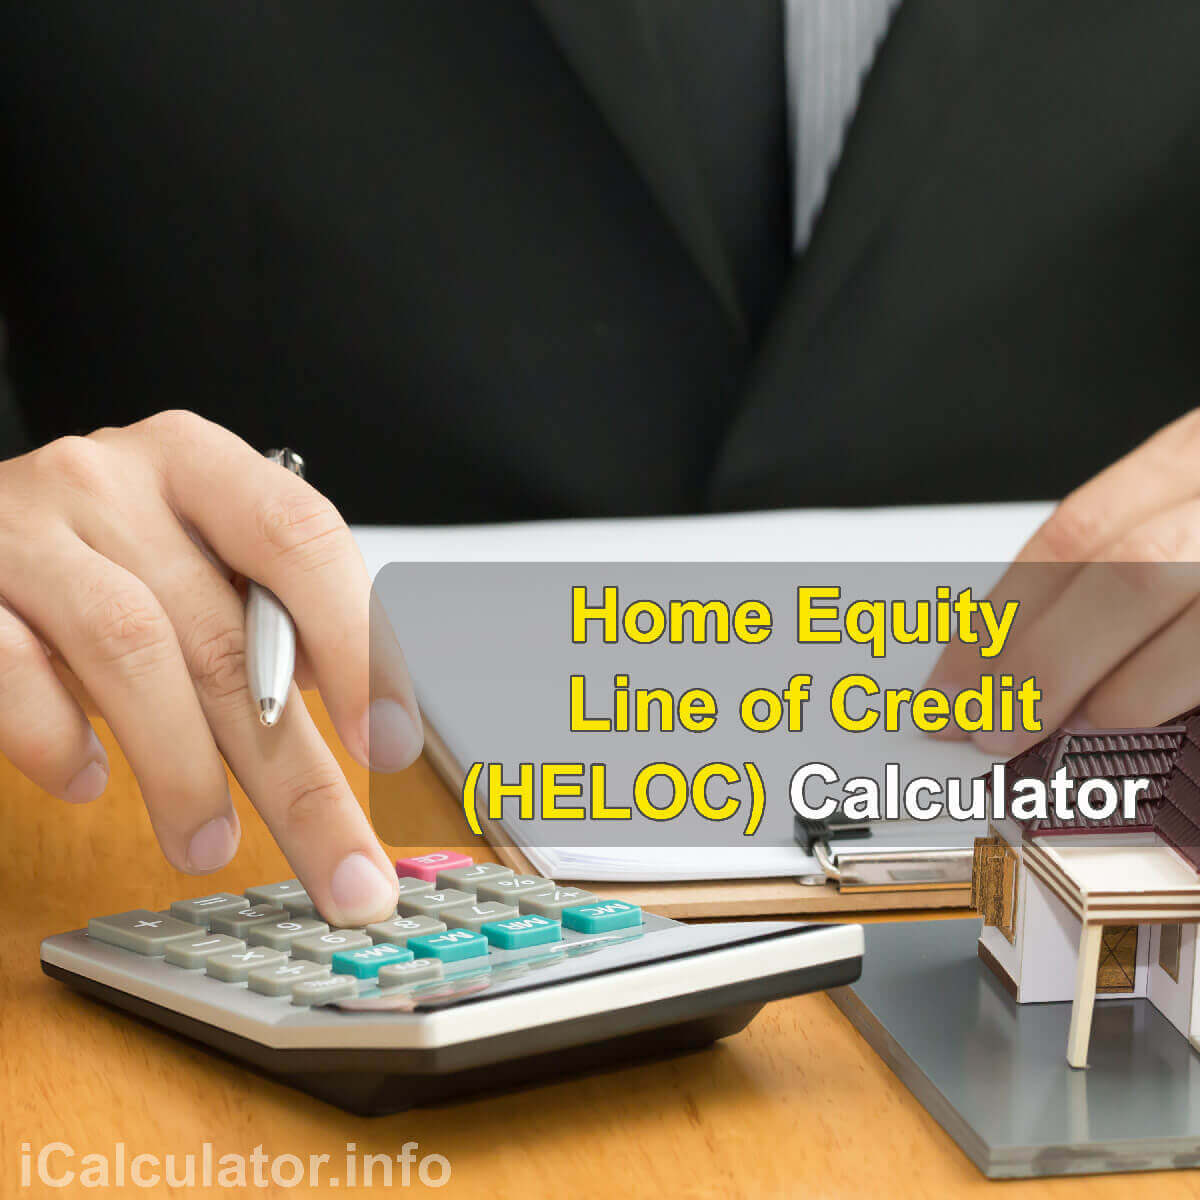 HELOC calculator | Home Equity Line of Credit Calculator. This image provides details of how to Home Equity Line of Credit using a calculator and notepad. By using the rule of home equity line of credit formula, annual interest rate formula and repayments formula, the HELOC Calculator provides a true calculation of the interest rate on a Home Equity Loan.